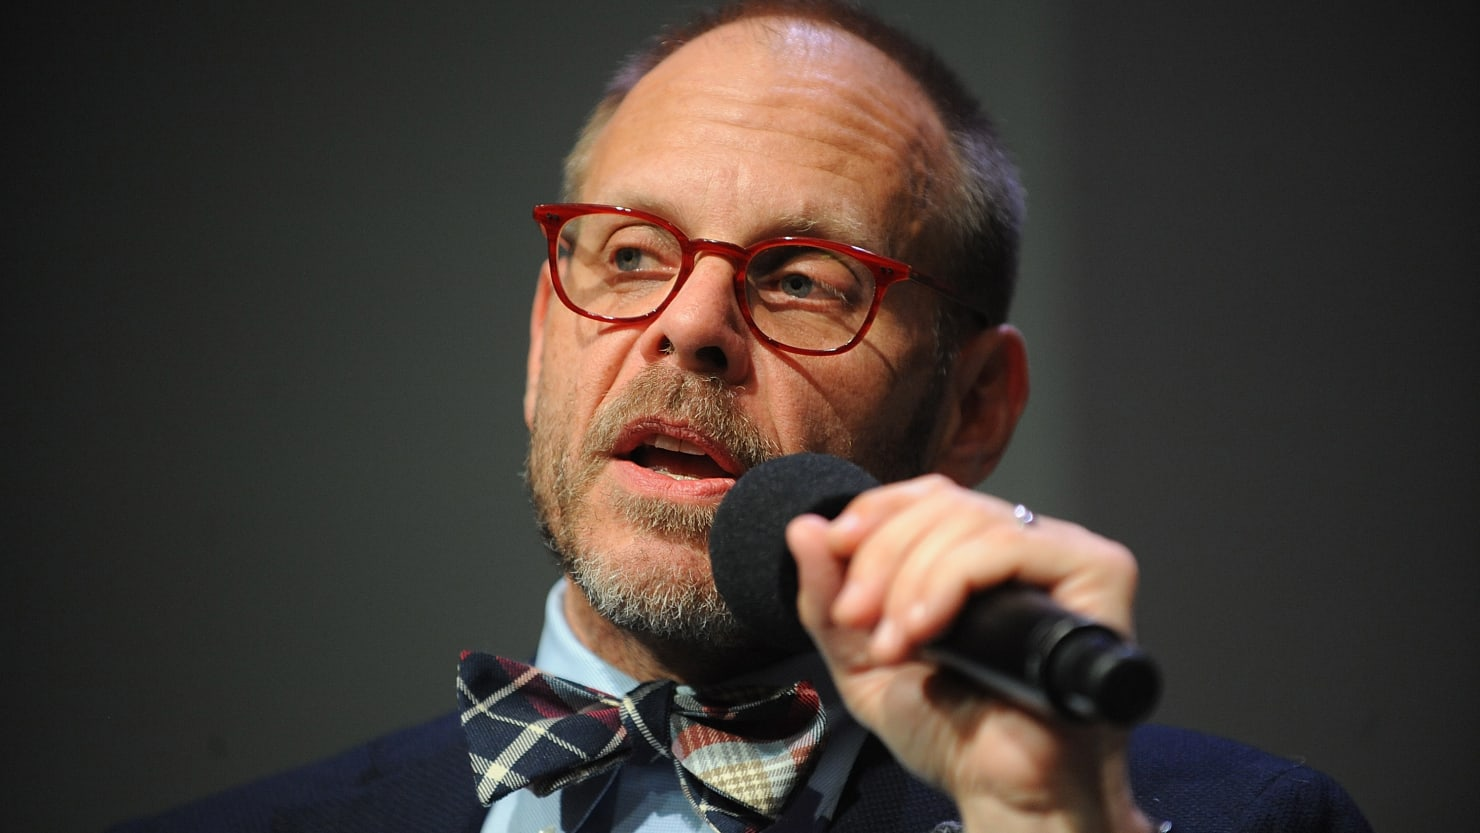 Alton Brown Comes Out as Republican, Fires Off Tasteless Holocaust Tweets - Daily Beast